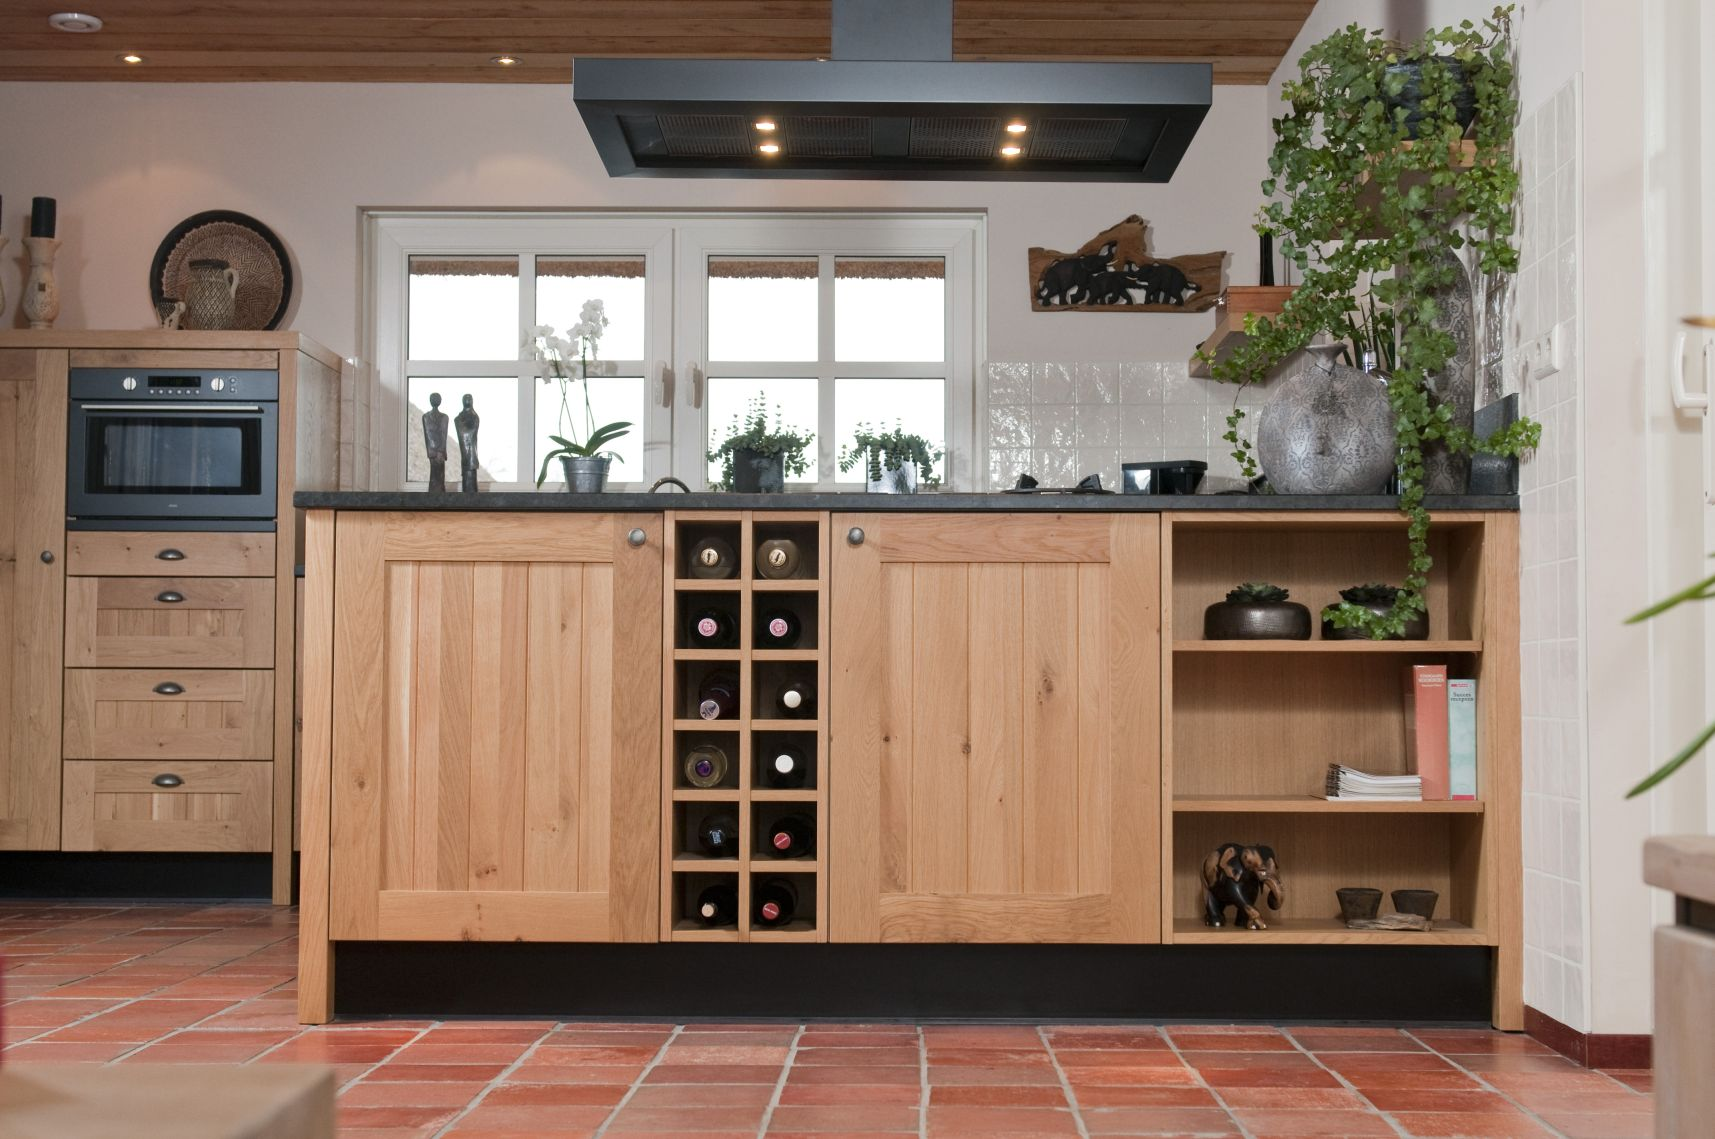 Keuken Eiken Massief : Images of Tile Floors with Oak Furniture